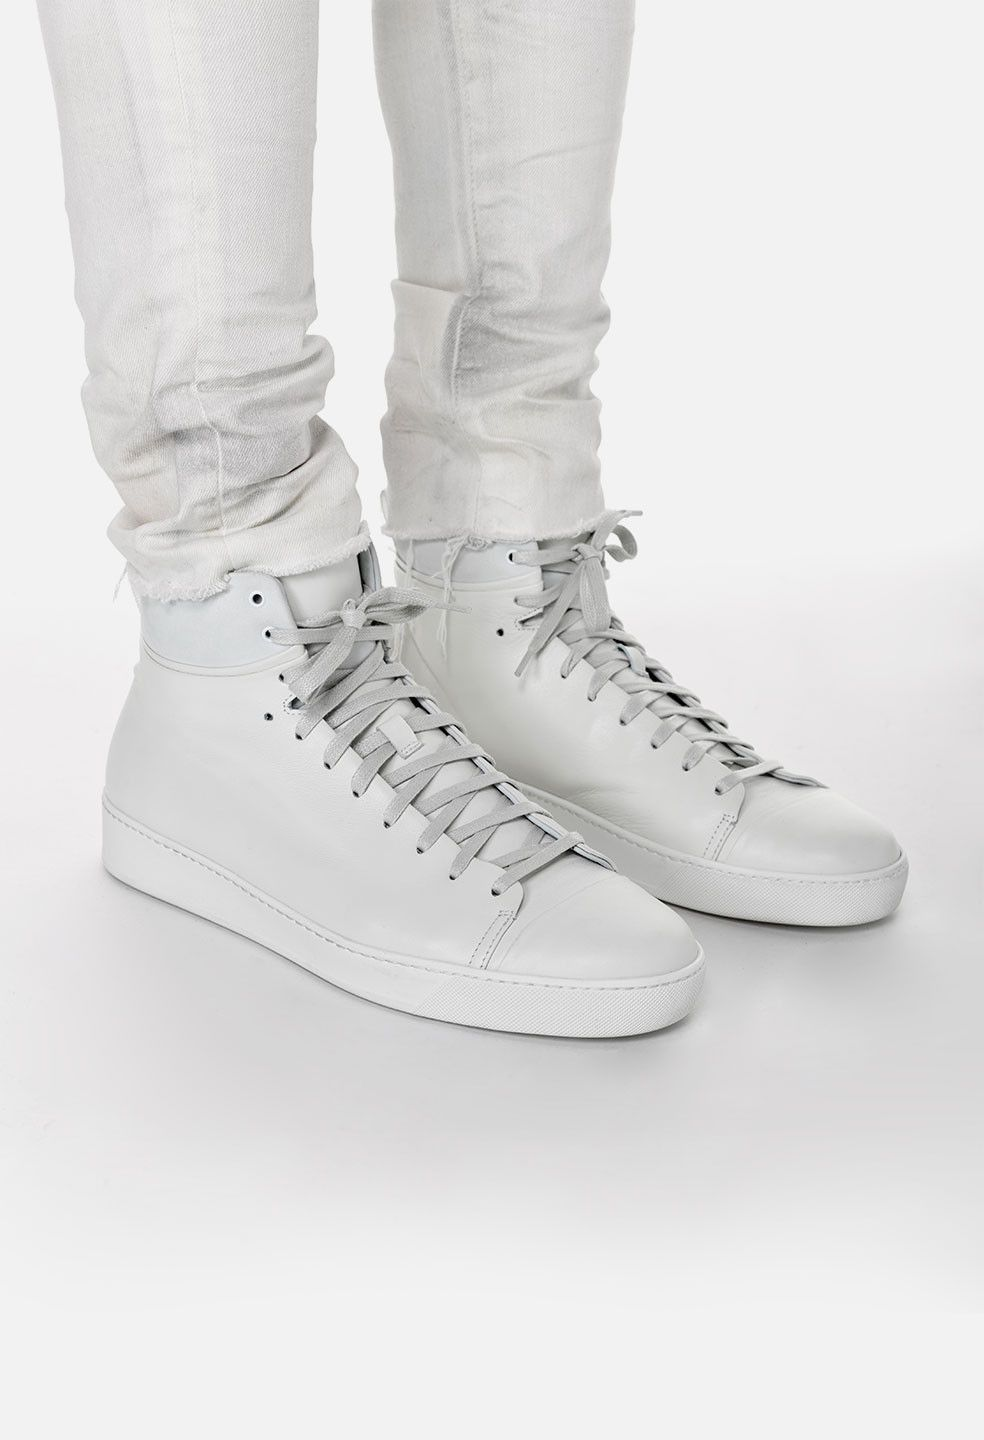 Leather sneakers men, Leather high tops